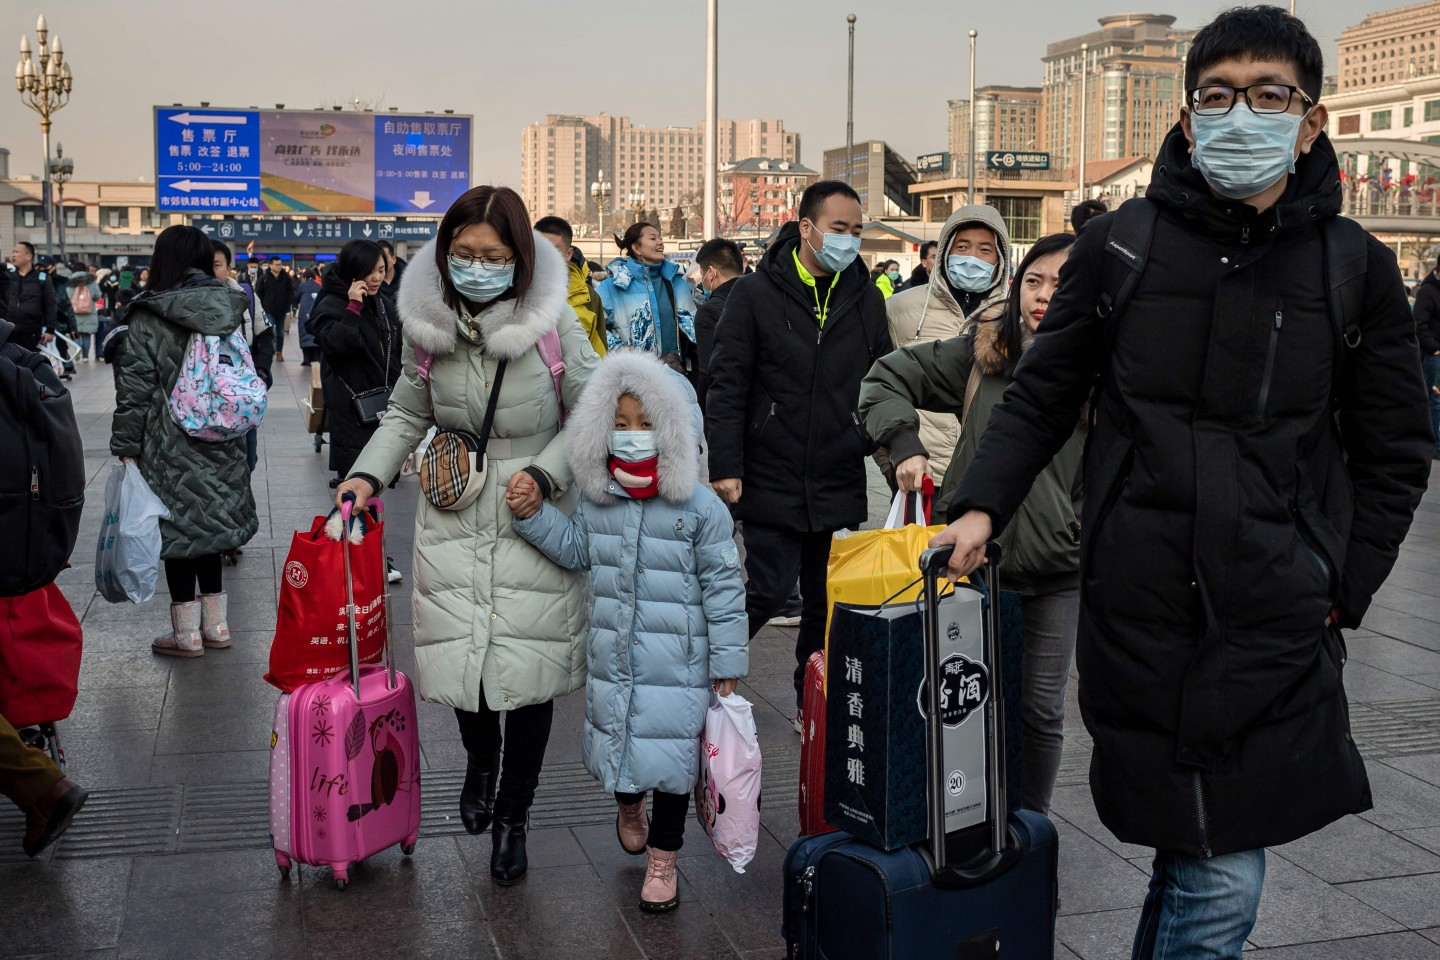 The outbreak of the Wuhan coronavirus is rapidly escalating. In this photo taken on 21 January 2020, people wearing protective masks are seen arriving at Beijing railway station to head home for the Lunar New Year. (Nicolas Asfouri/AFP)